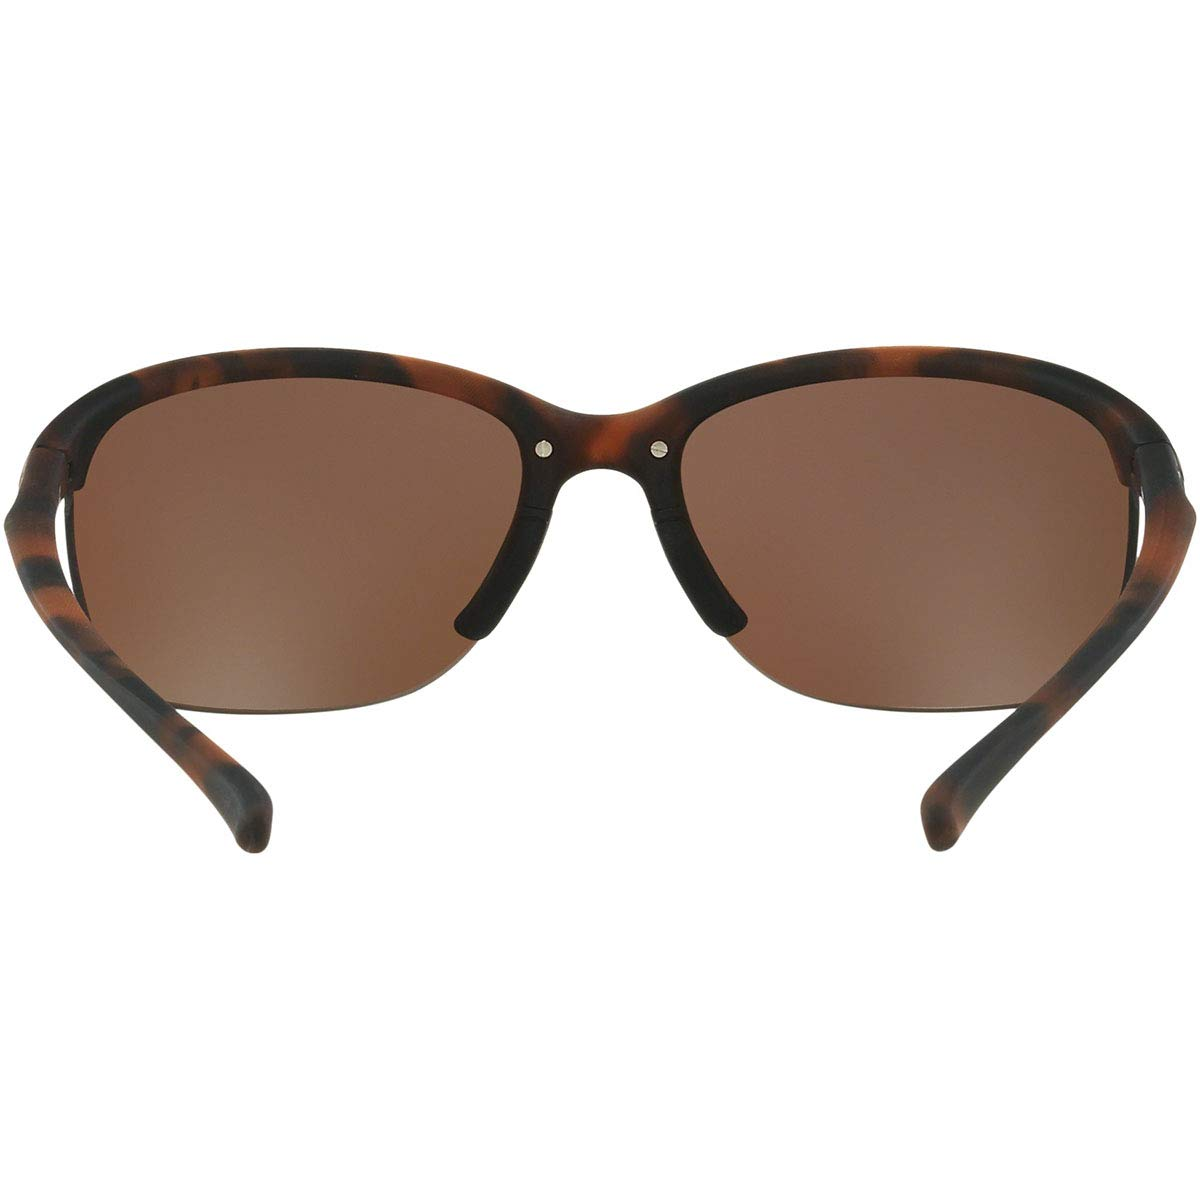 02b8a848b77ba Amazon.com  Oakley Women s Unstoppable Polarized Iridium Rectangular  Sunglasses MATTE BROWN TORTOISE 65.4 mm  Clothing